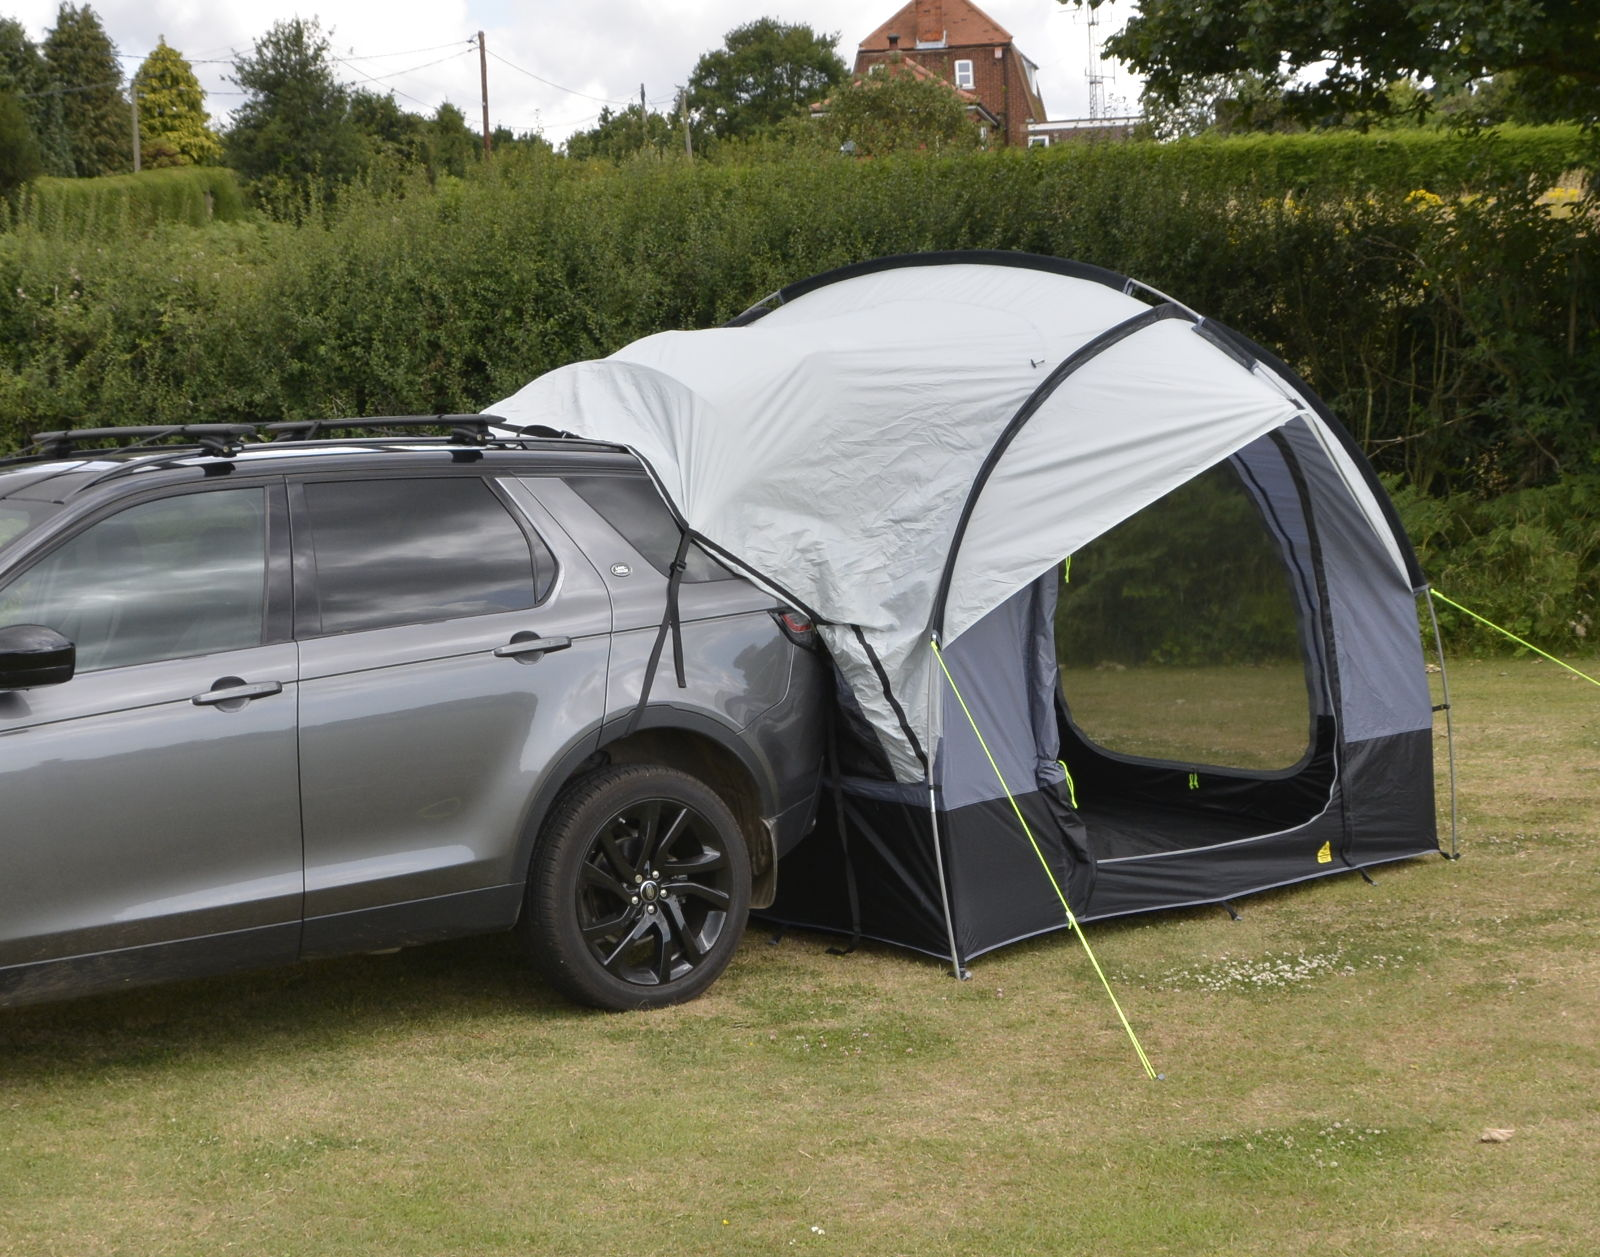 ... Back up to awning and fit to tailgate of vehicle Rain shelter canopy ... & Kampa Travel Pod Tailgater